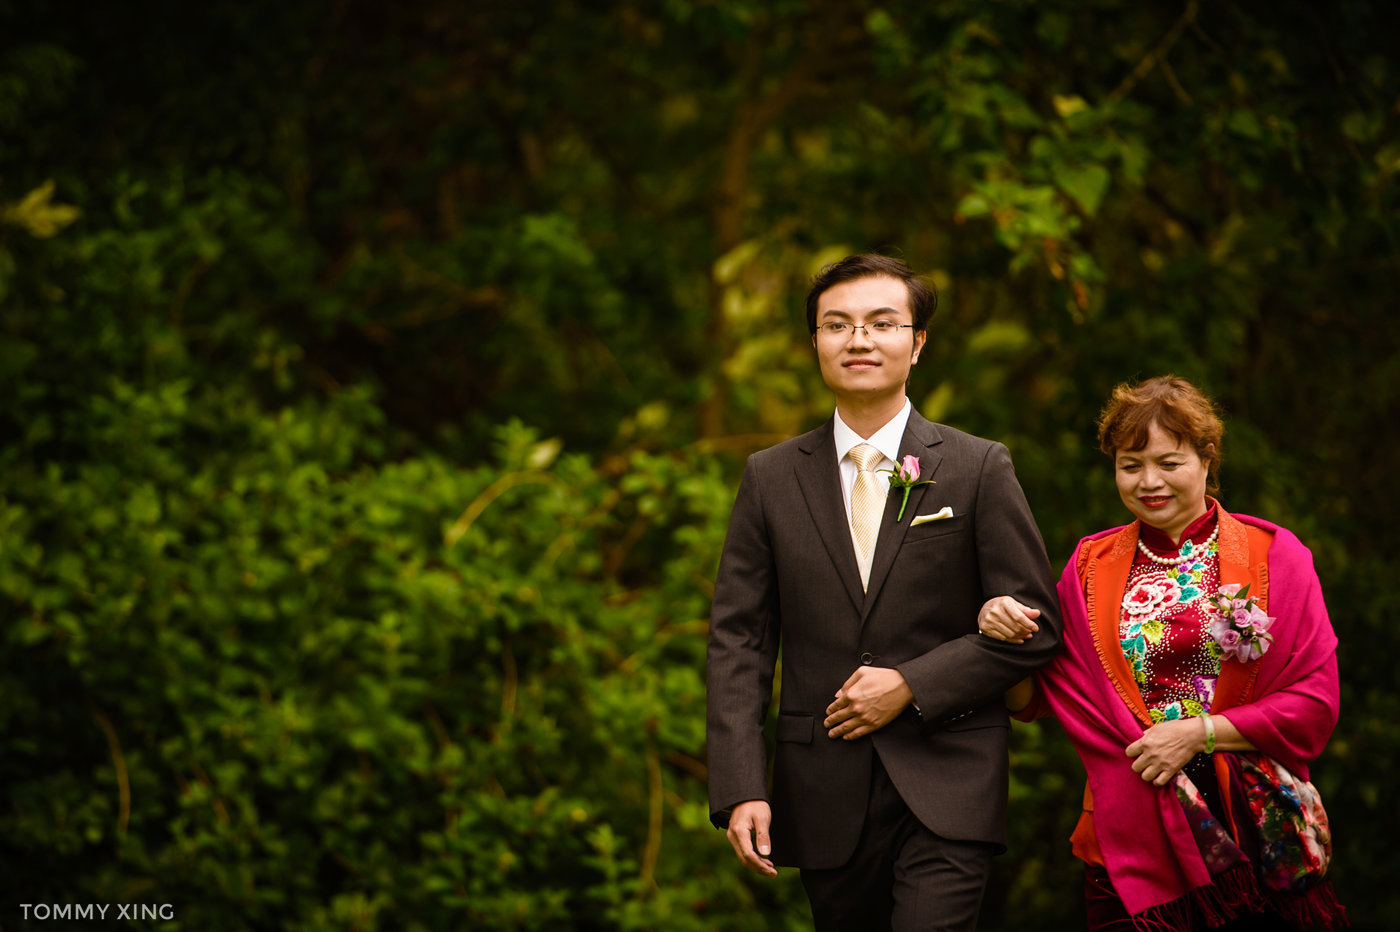 Seattle Wedding and pre wedding Los Angeles Tommy Xing Photography 西雅图洛杉矶旧金山婚礼婚纱照摄影师 065.jpg